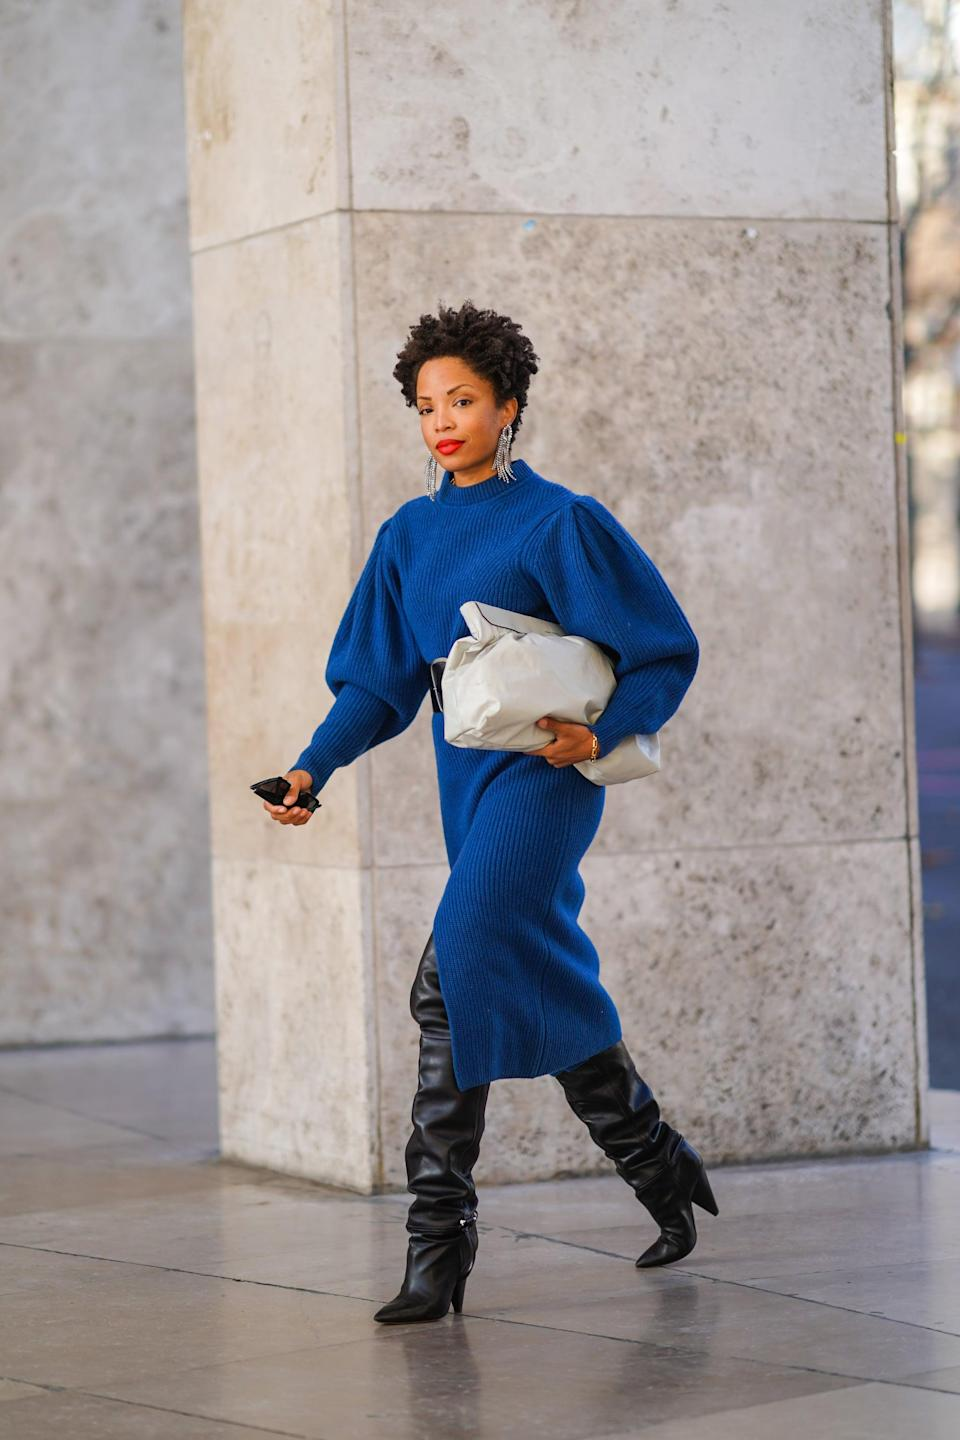 <p>Puff sleeves are still have a moment, and we can't get enough of the drama. For a cozy and stylish look, go for a thick knit dress with voluminous sleeves. Complete the look with some tall riding boots and a pouch.</p>